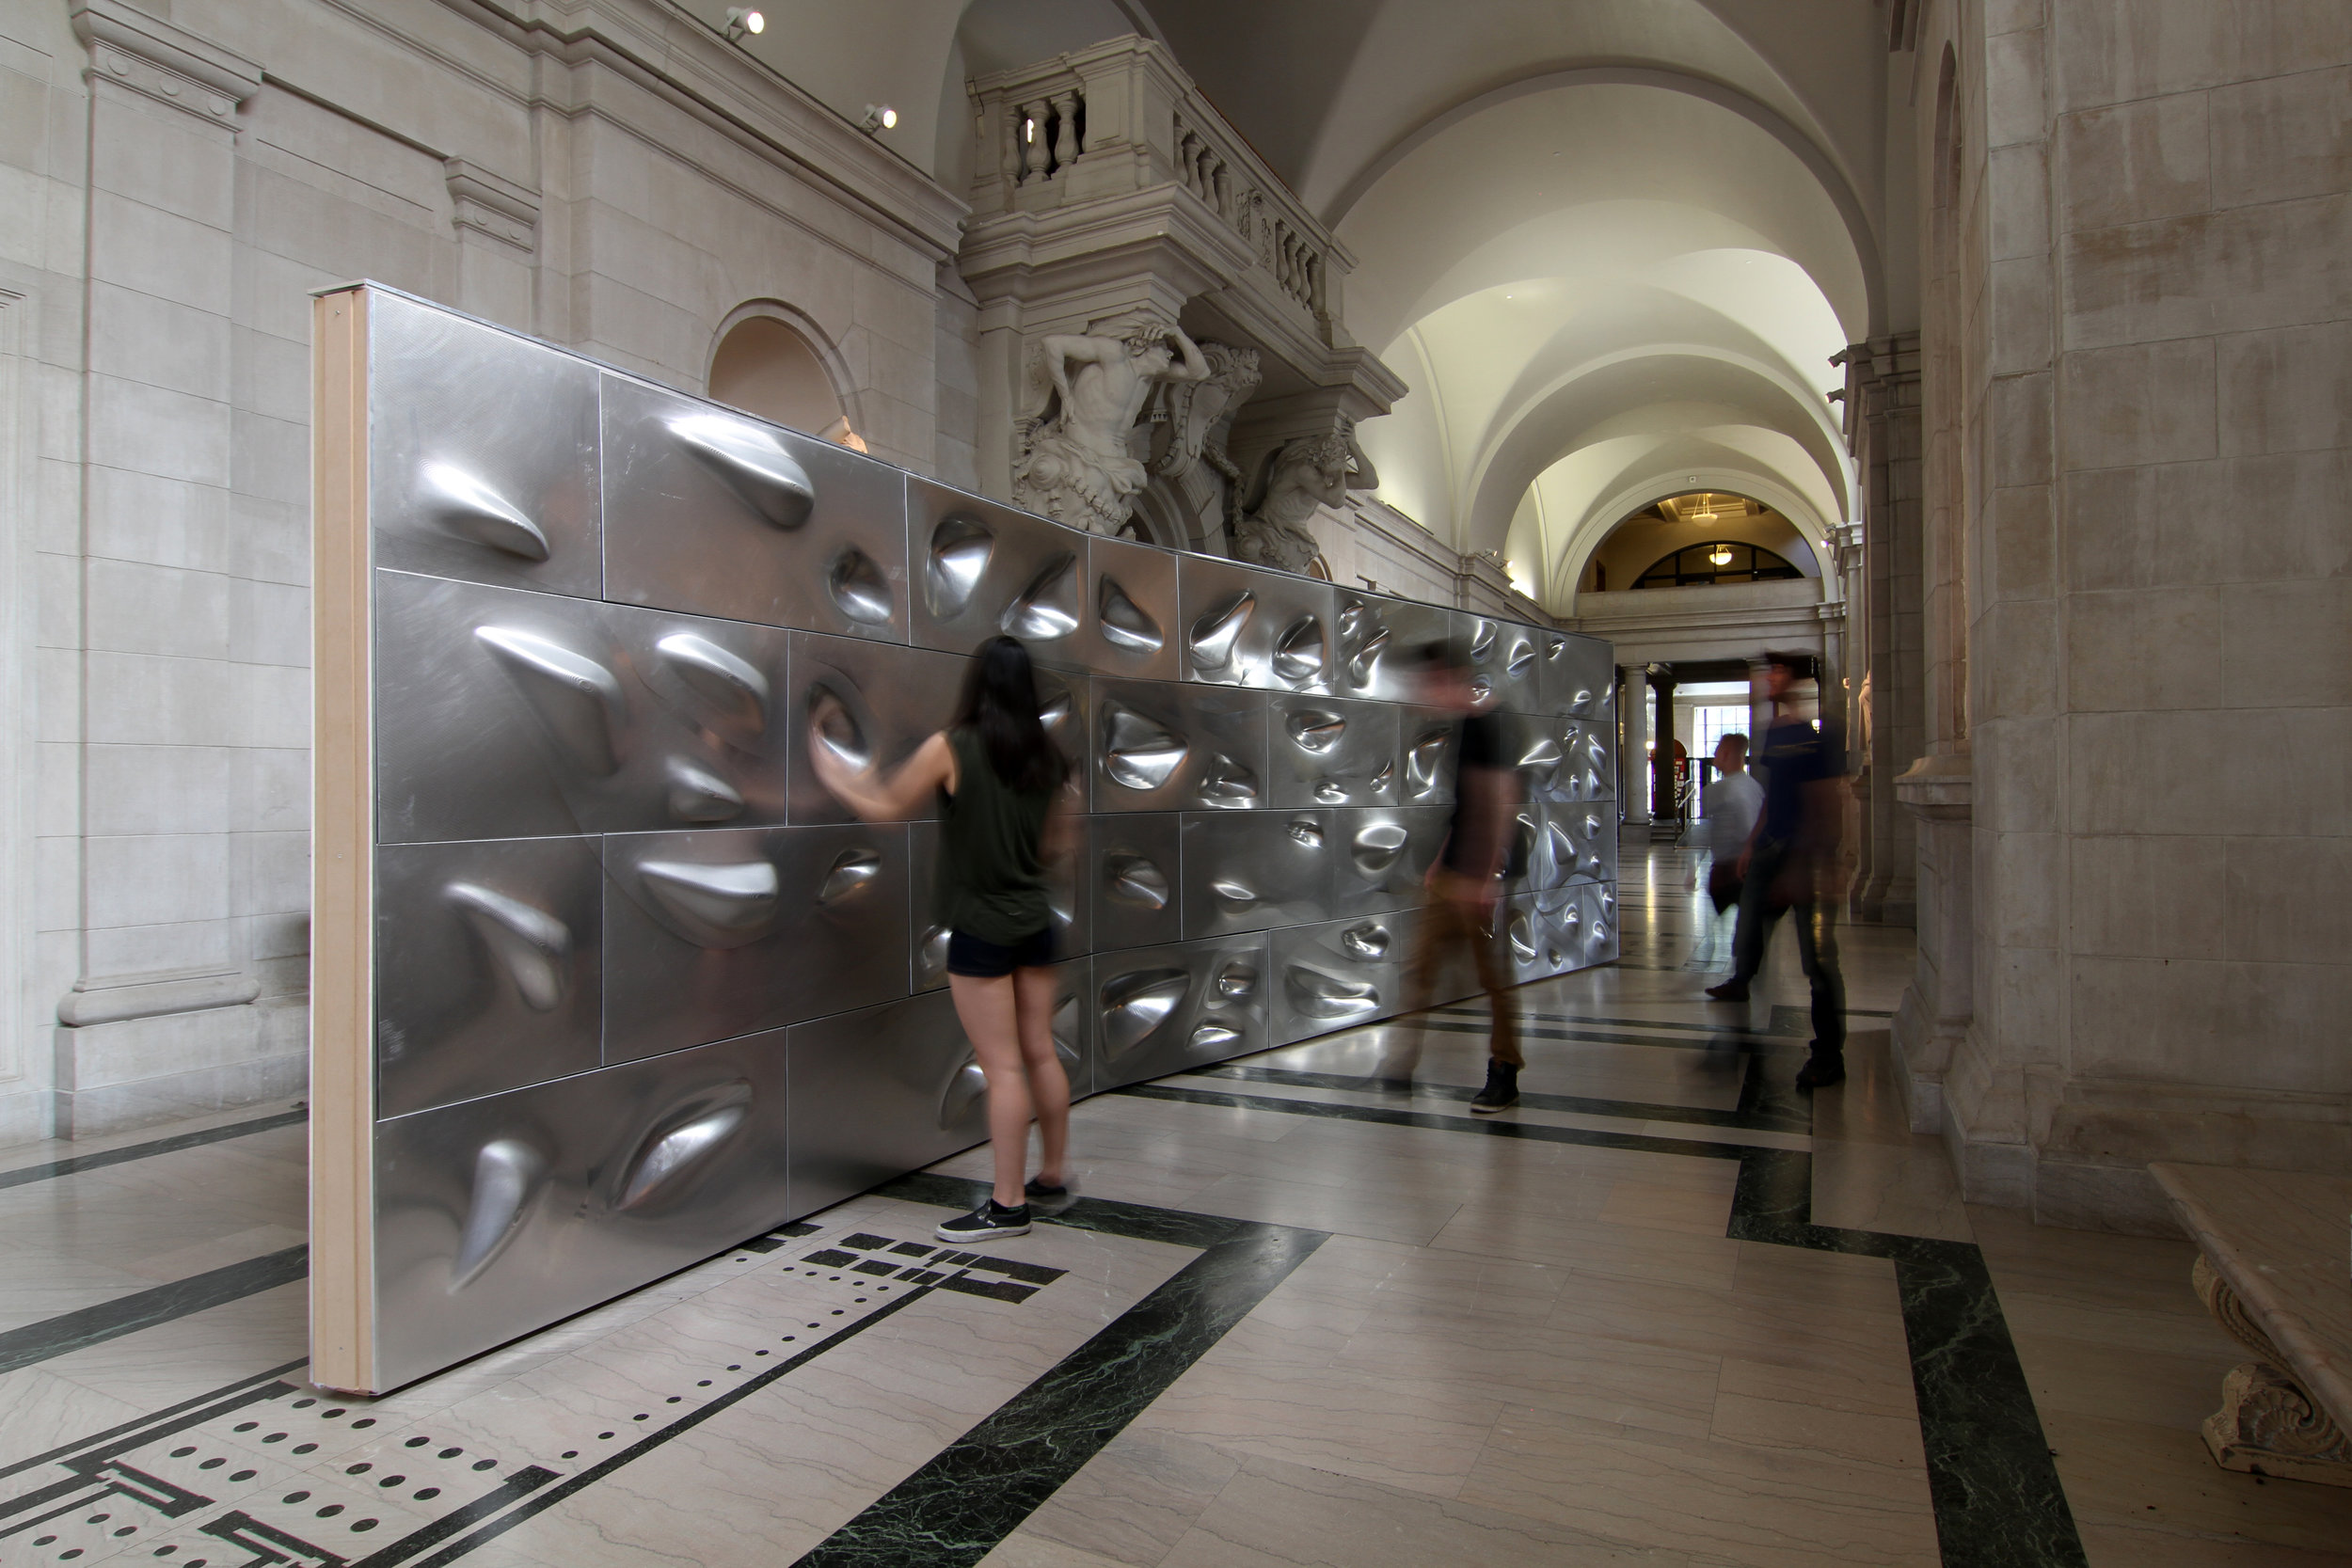 tact[Al], a robotically formed aluminum surface that explores the themes of material ductility, reflection, and tactility, is on display in the CFA Great Hall through 26 April.